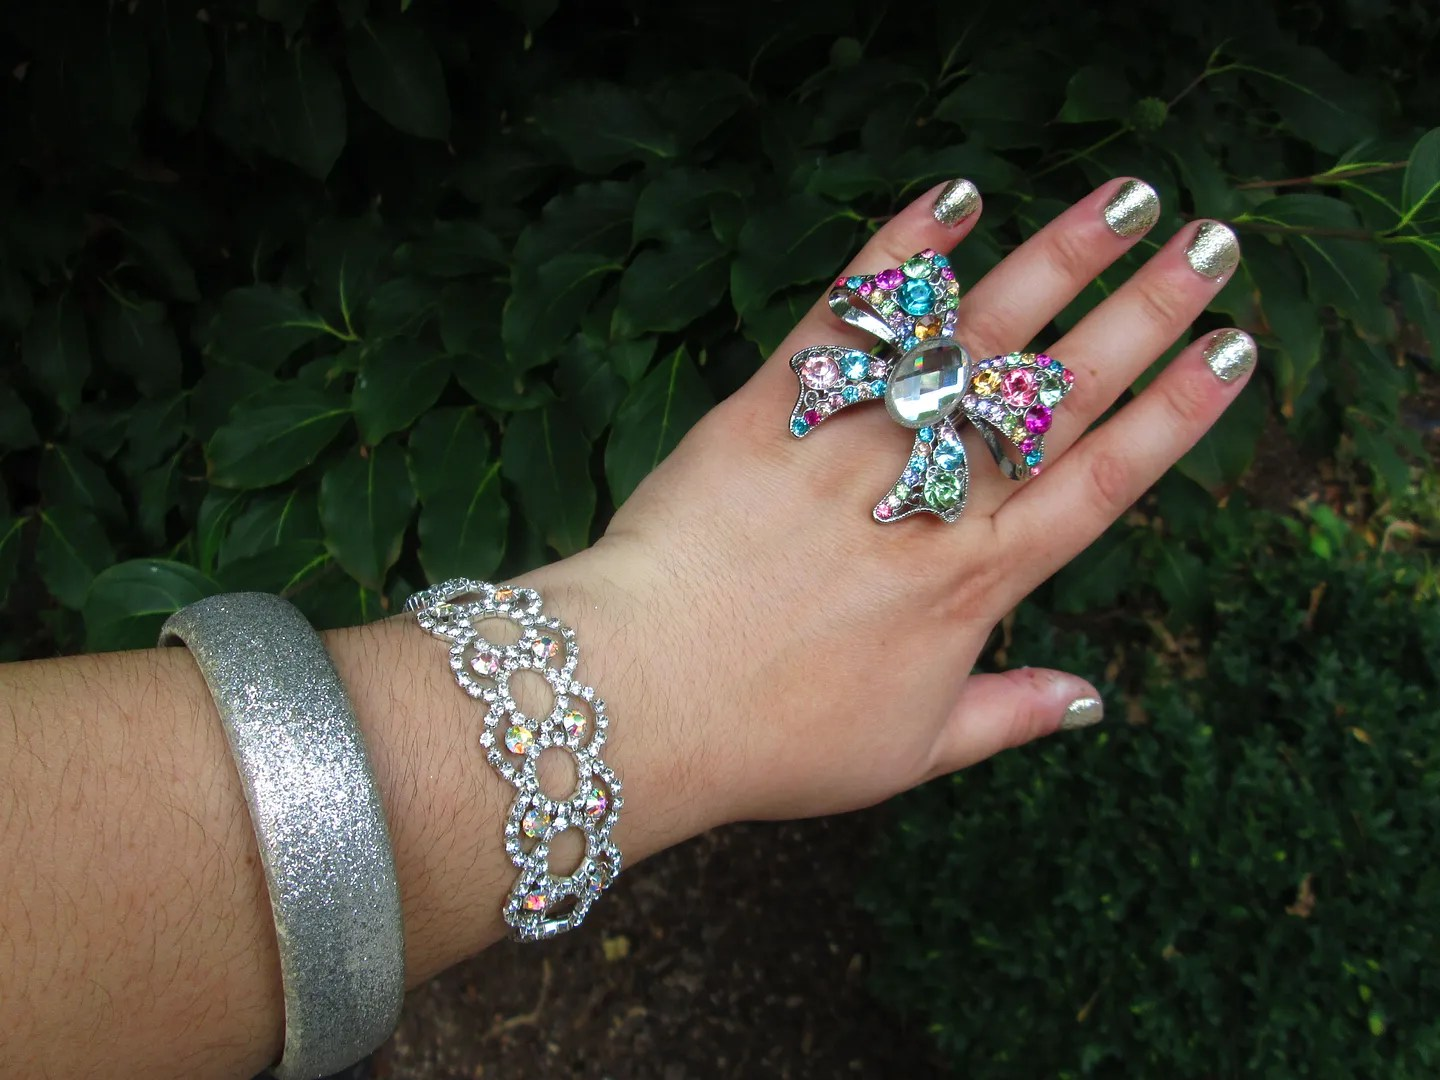 rhinestone rainbow and silver jewelry rings and bracelets